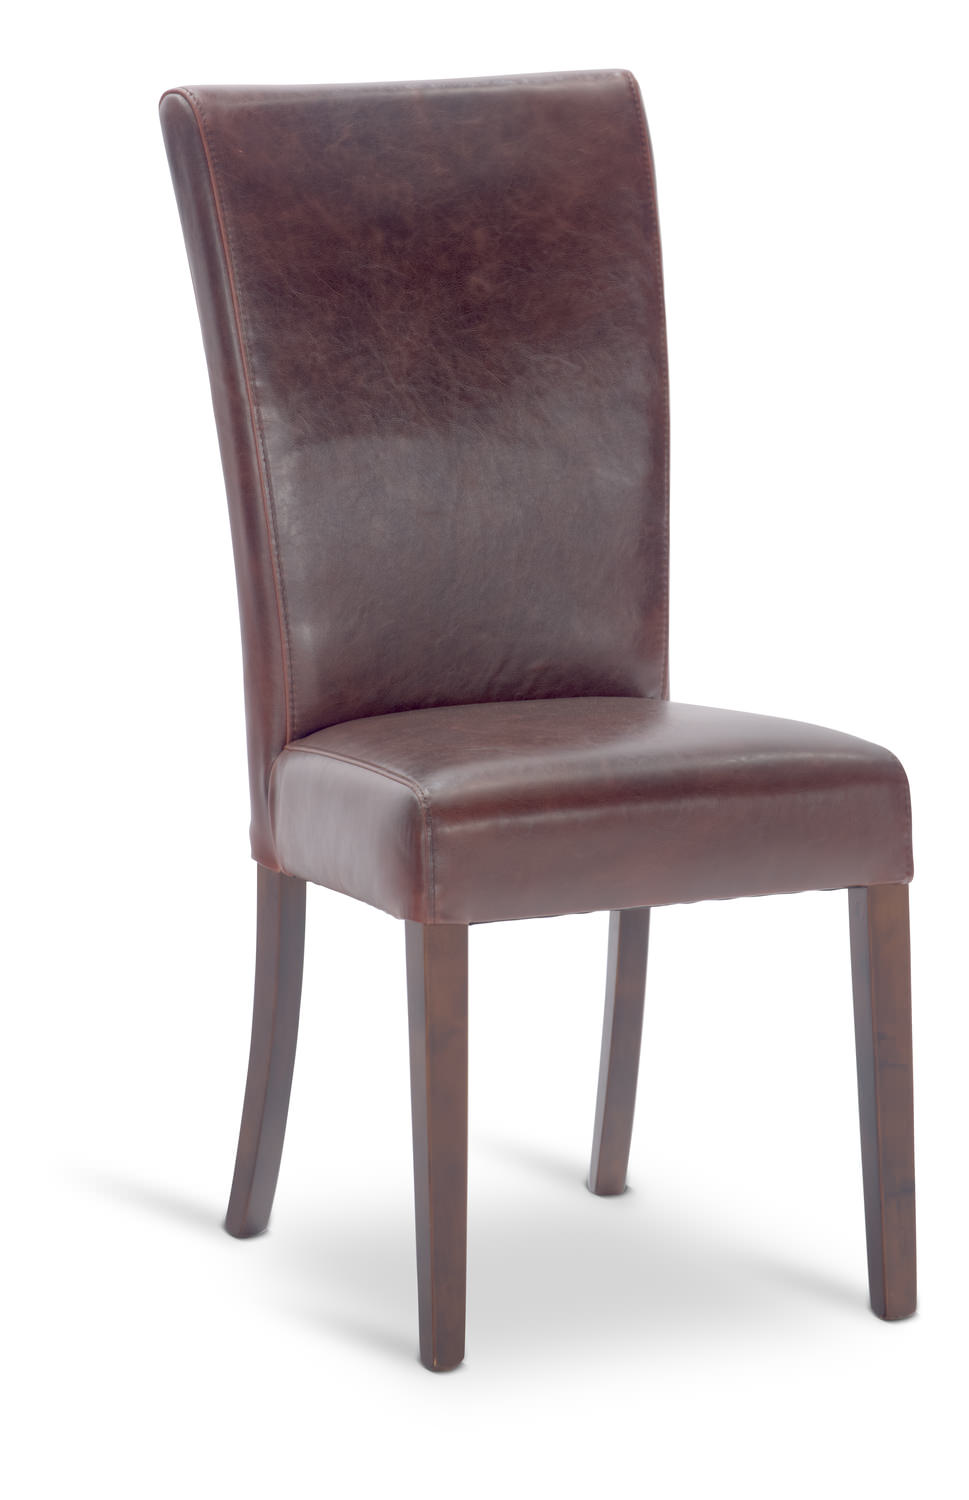 Urban Leather – Baha Chair